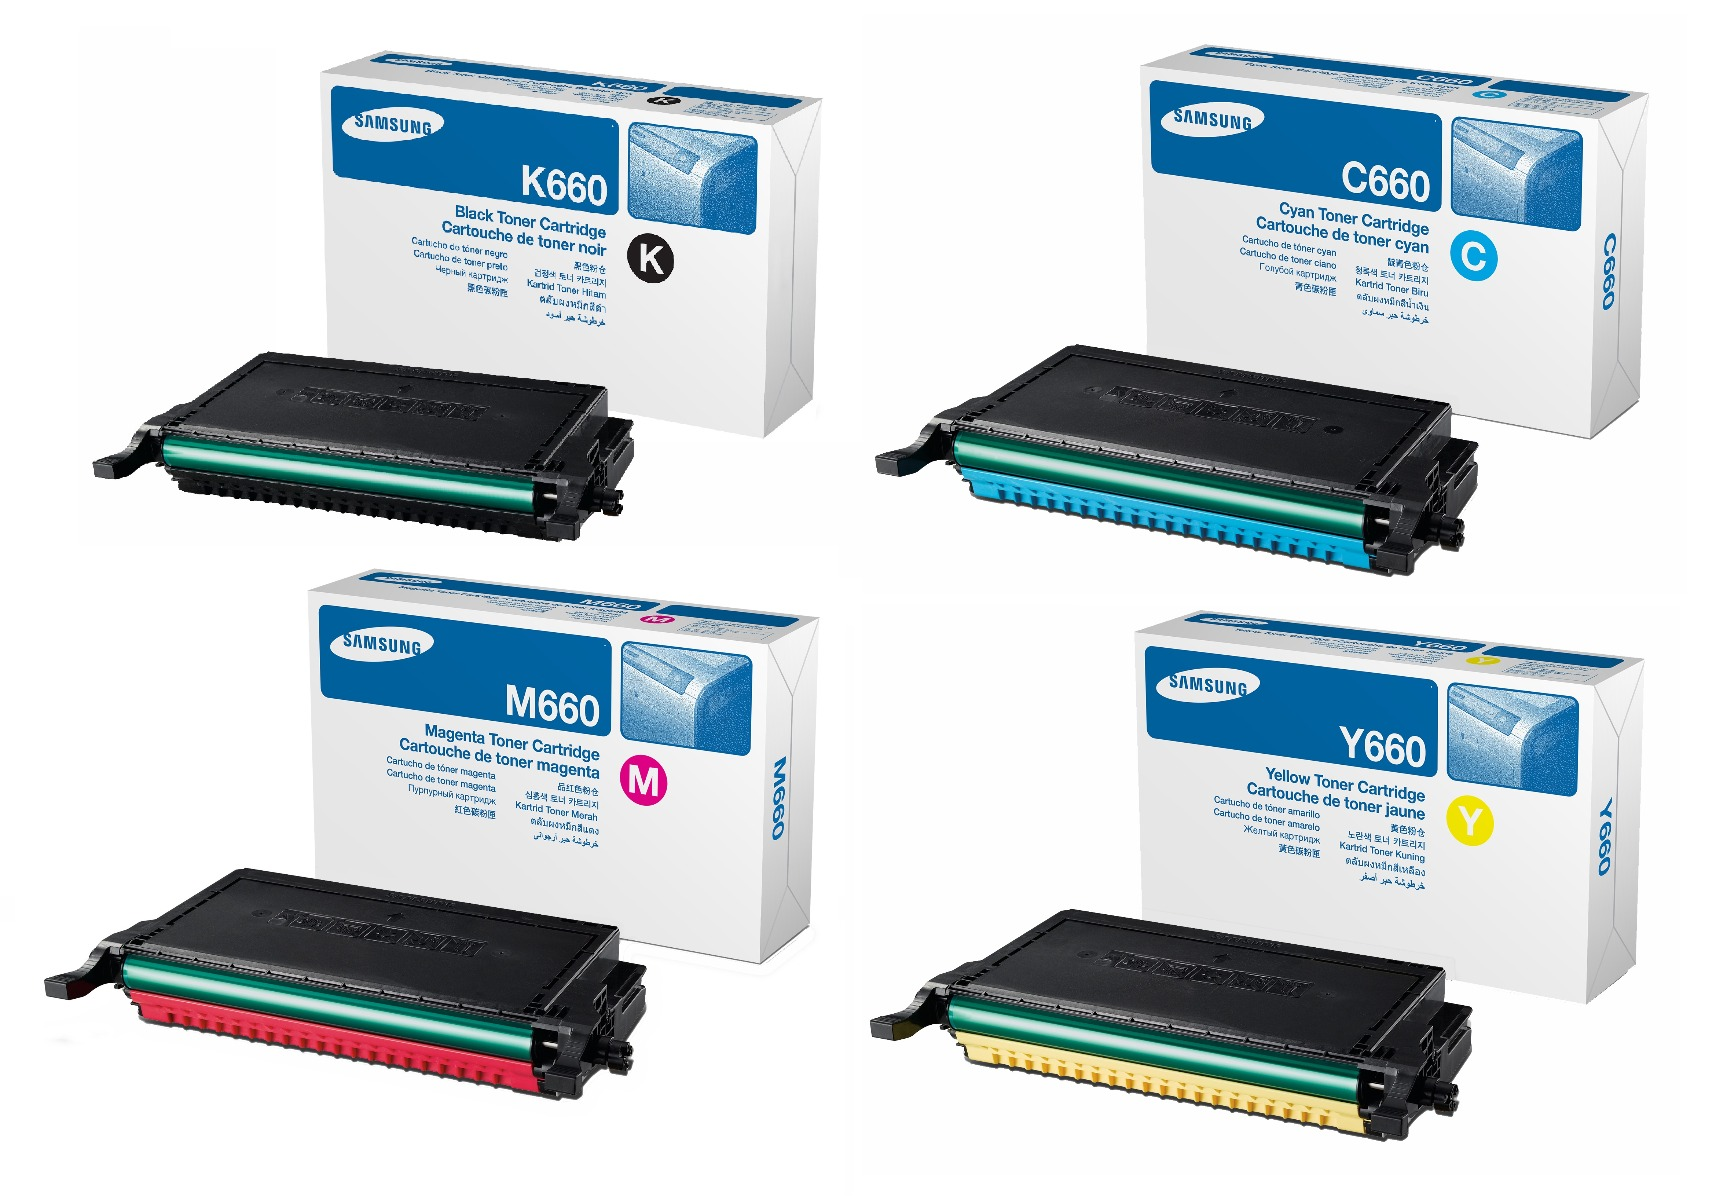 Genuine High Capacity 4 Colour Samsung CLP-660B Toner Cartridge Multipack (CLP-K660B/C660B/M660B/Y660B)